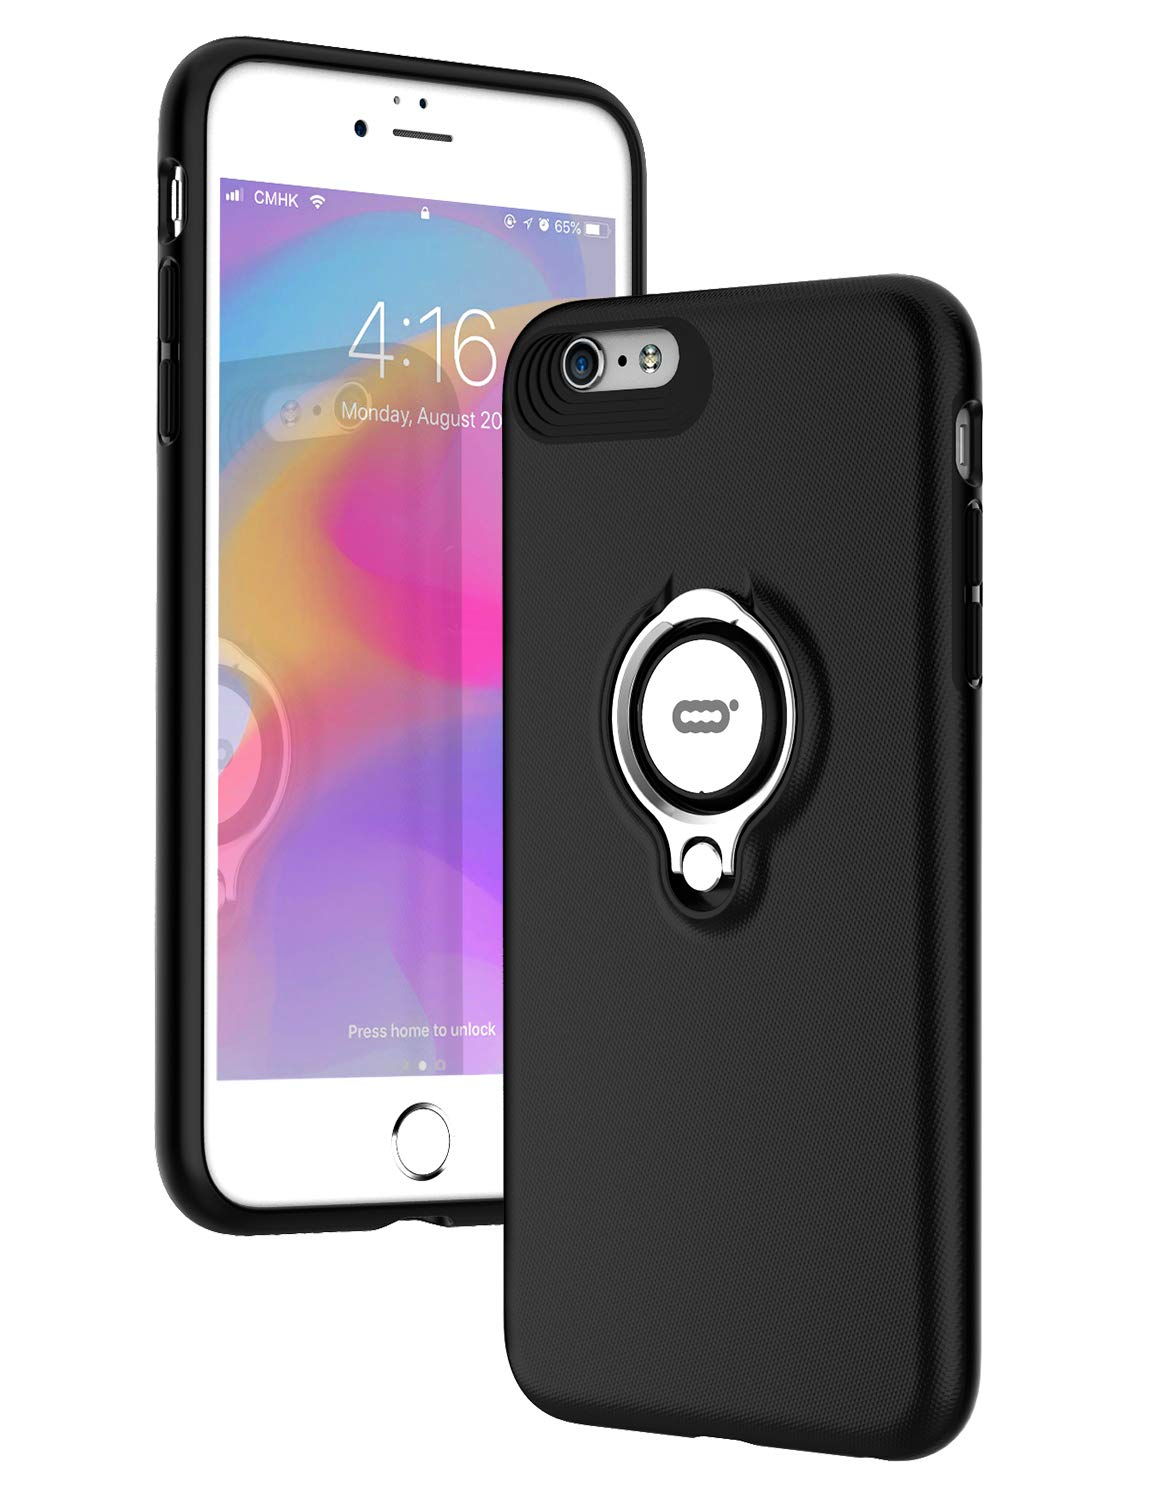 new product 3c99f c6935 iPhone 6s Case, iPhone 6 case with Ring Kickstand by ICONFLANG, 360 Degree  Rotating Ring Grip Case, Dual Layer Shockproof Impact Protection Case for  ...